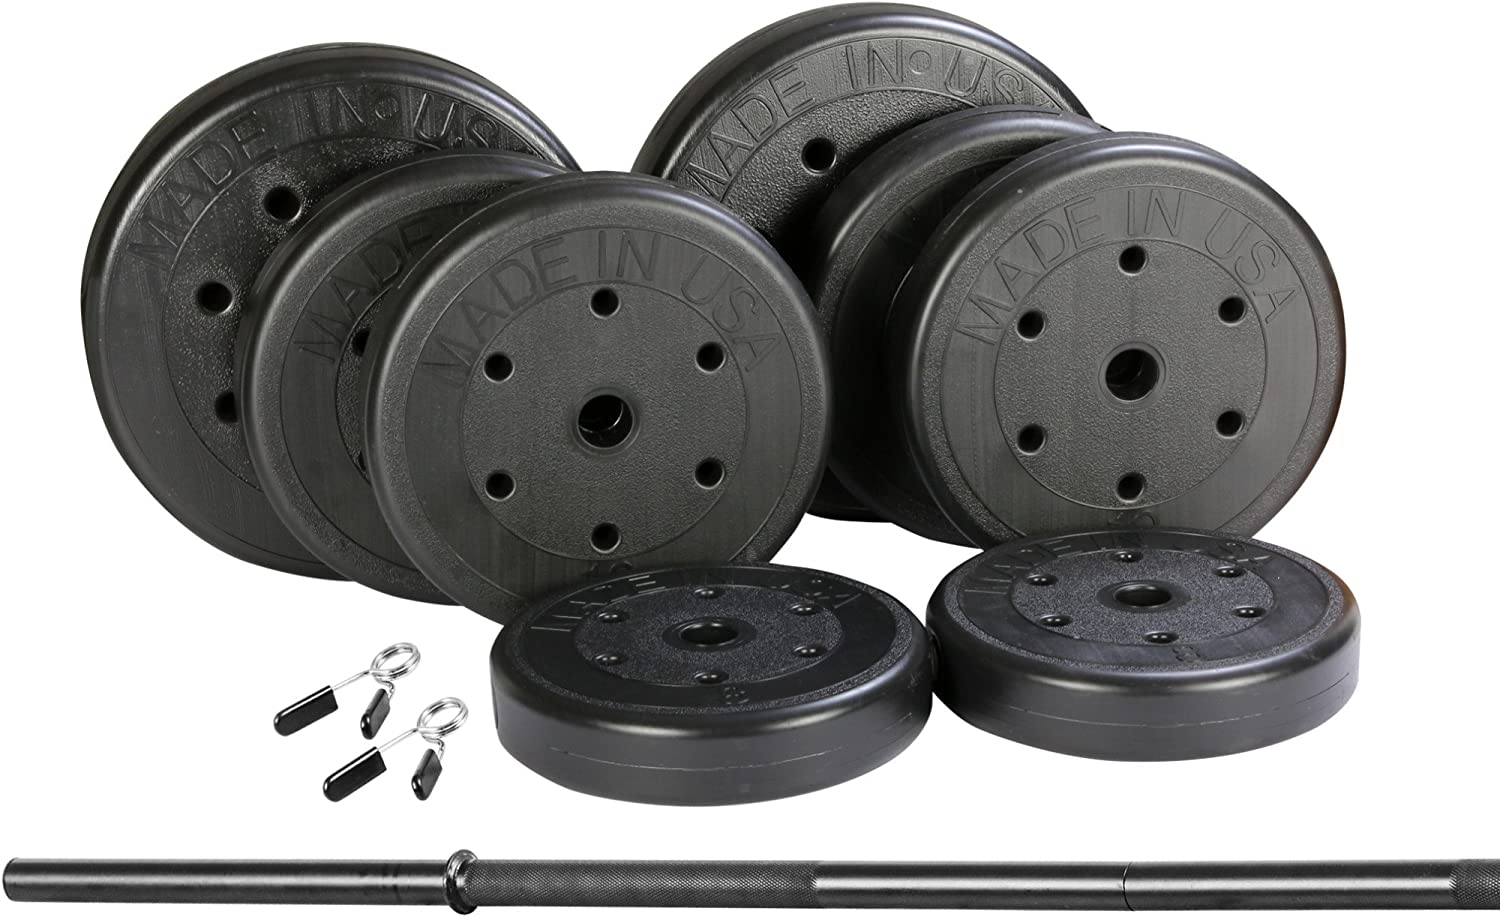 US Weight 100 lb. Traditional Barbell Weight Set with New Upgraded Bar and Spring Locking Clips – Includes 20, 20 and 8 lb. Weights